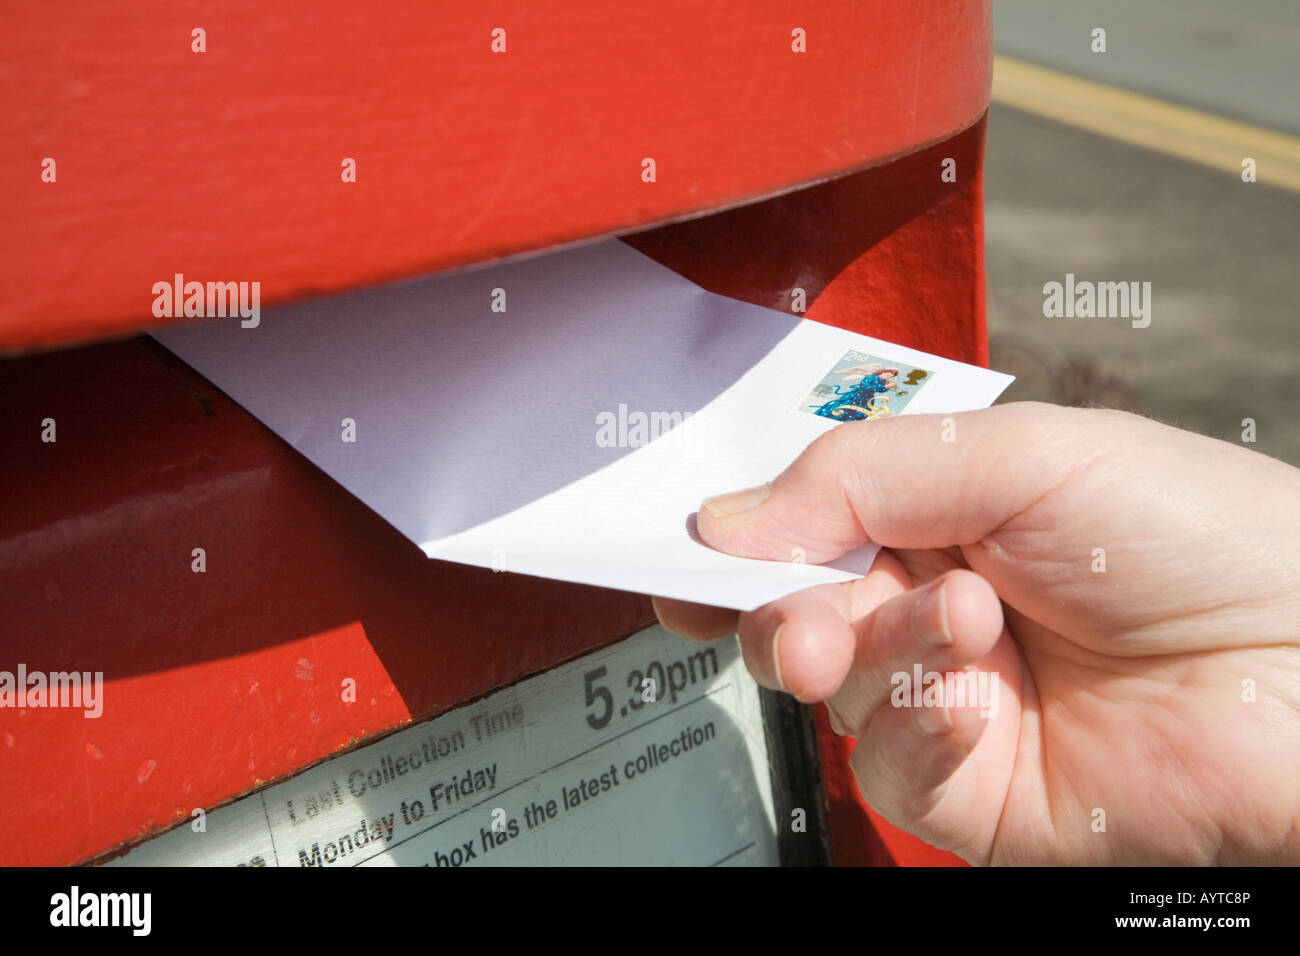 Close-up of person's hand holding posting a letter with 2nd class stamp to post in a red postbox. England UK Stock Photo